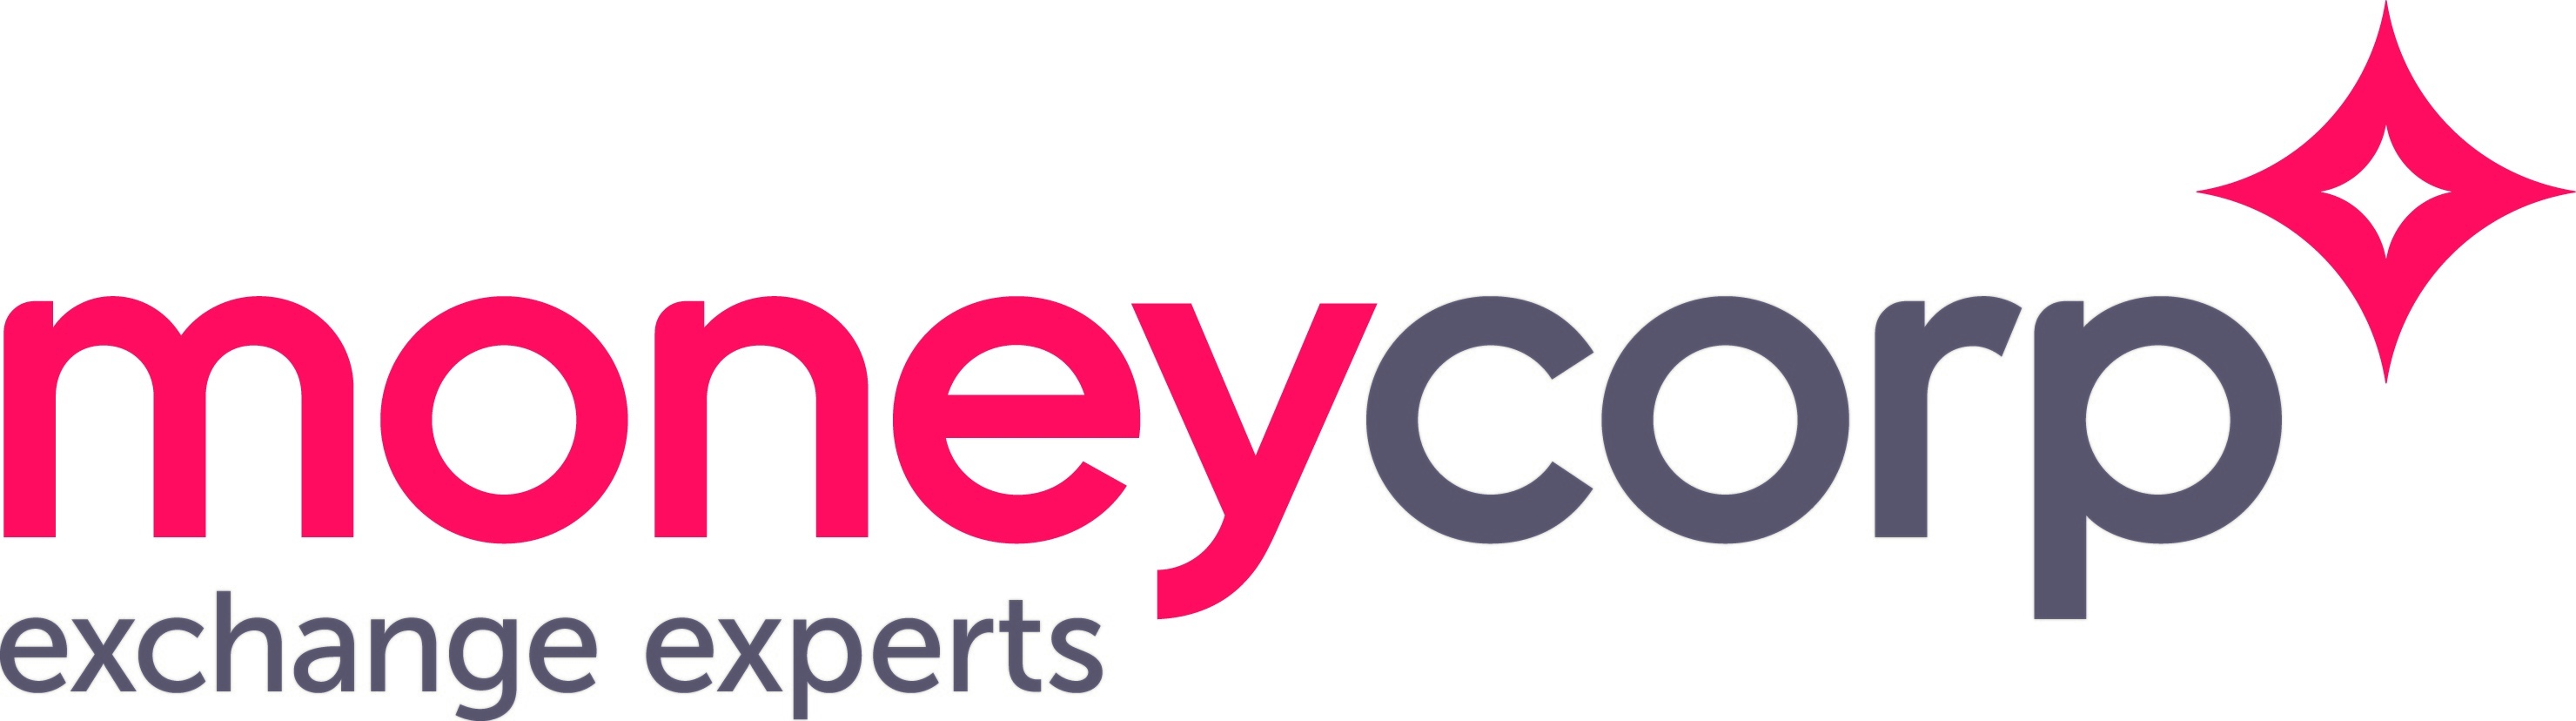 transferring international currency with moneycorp